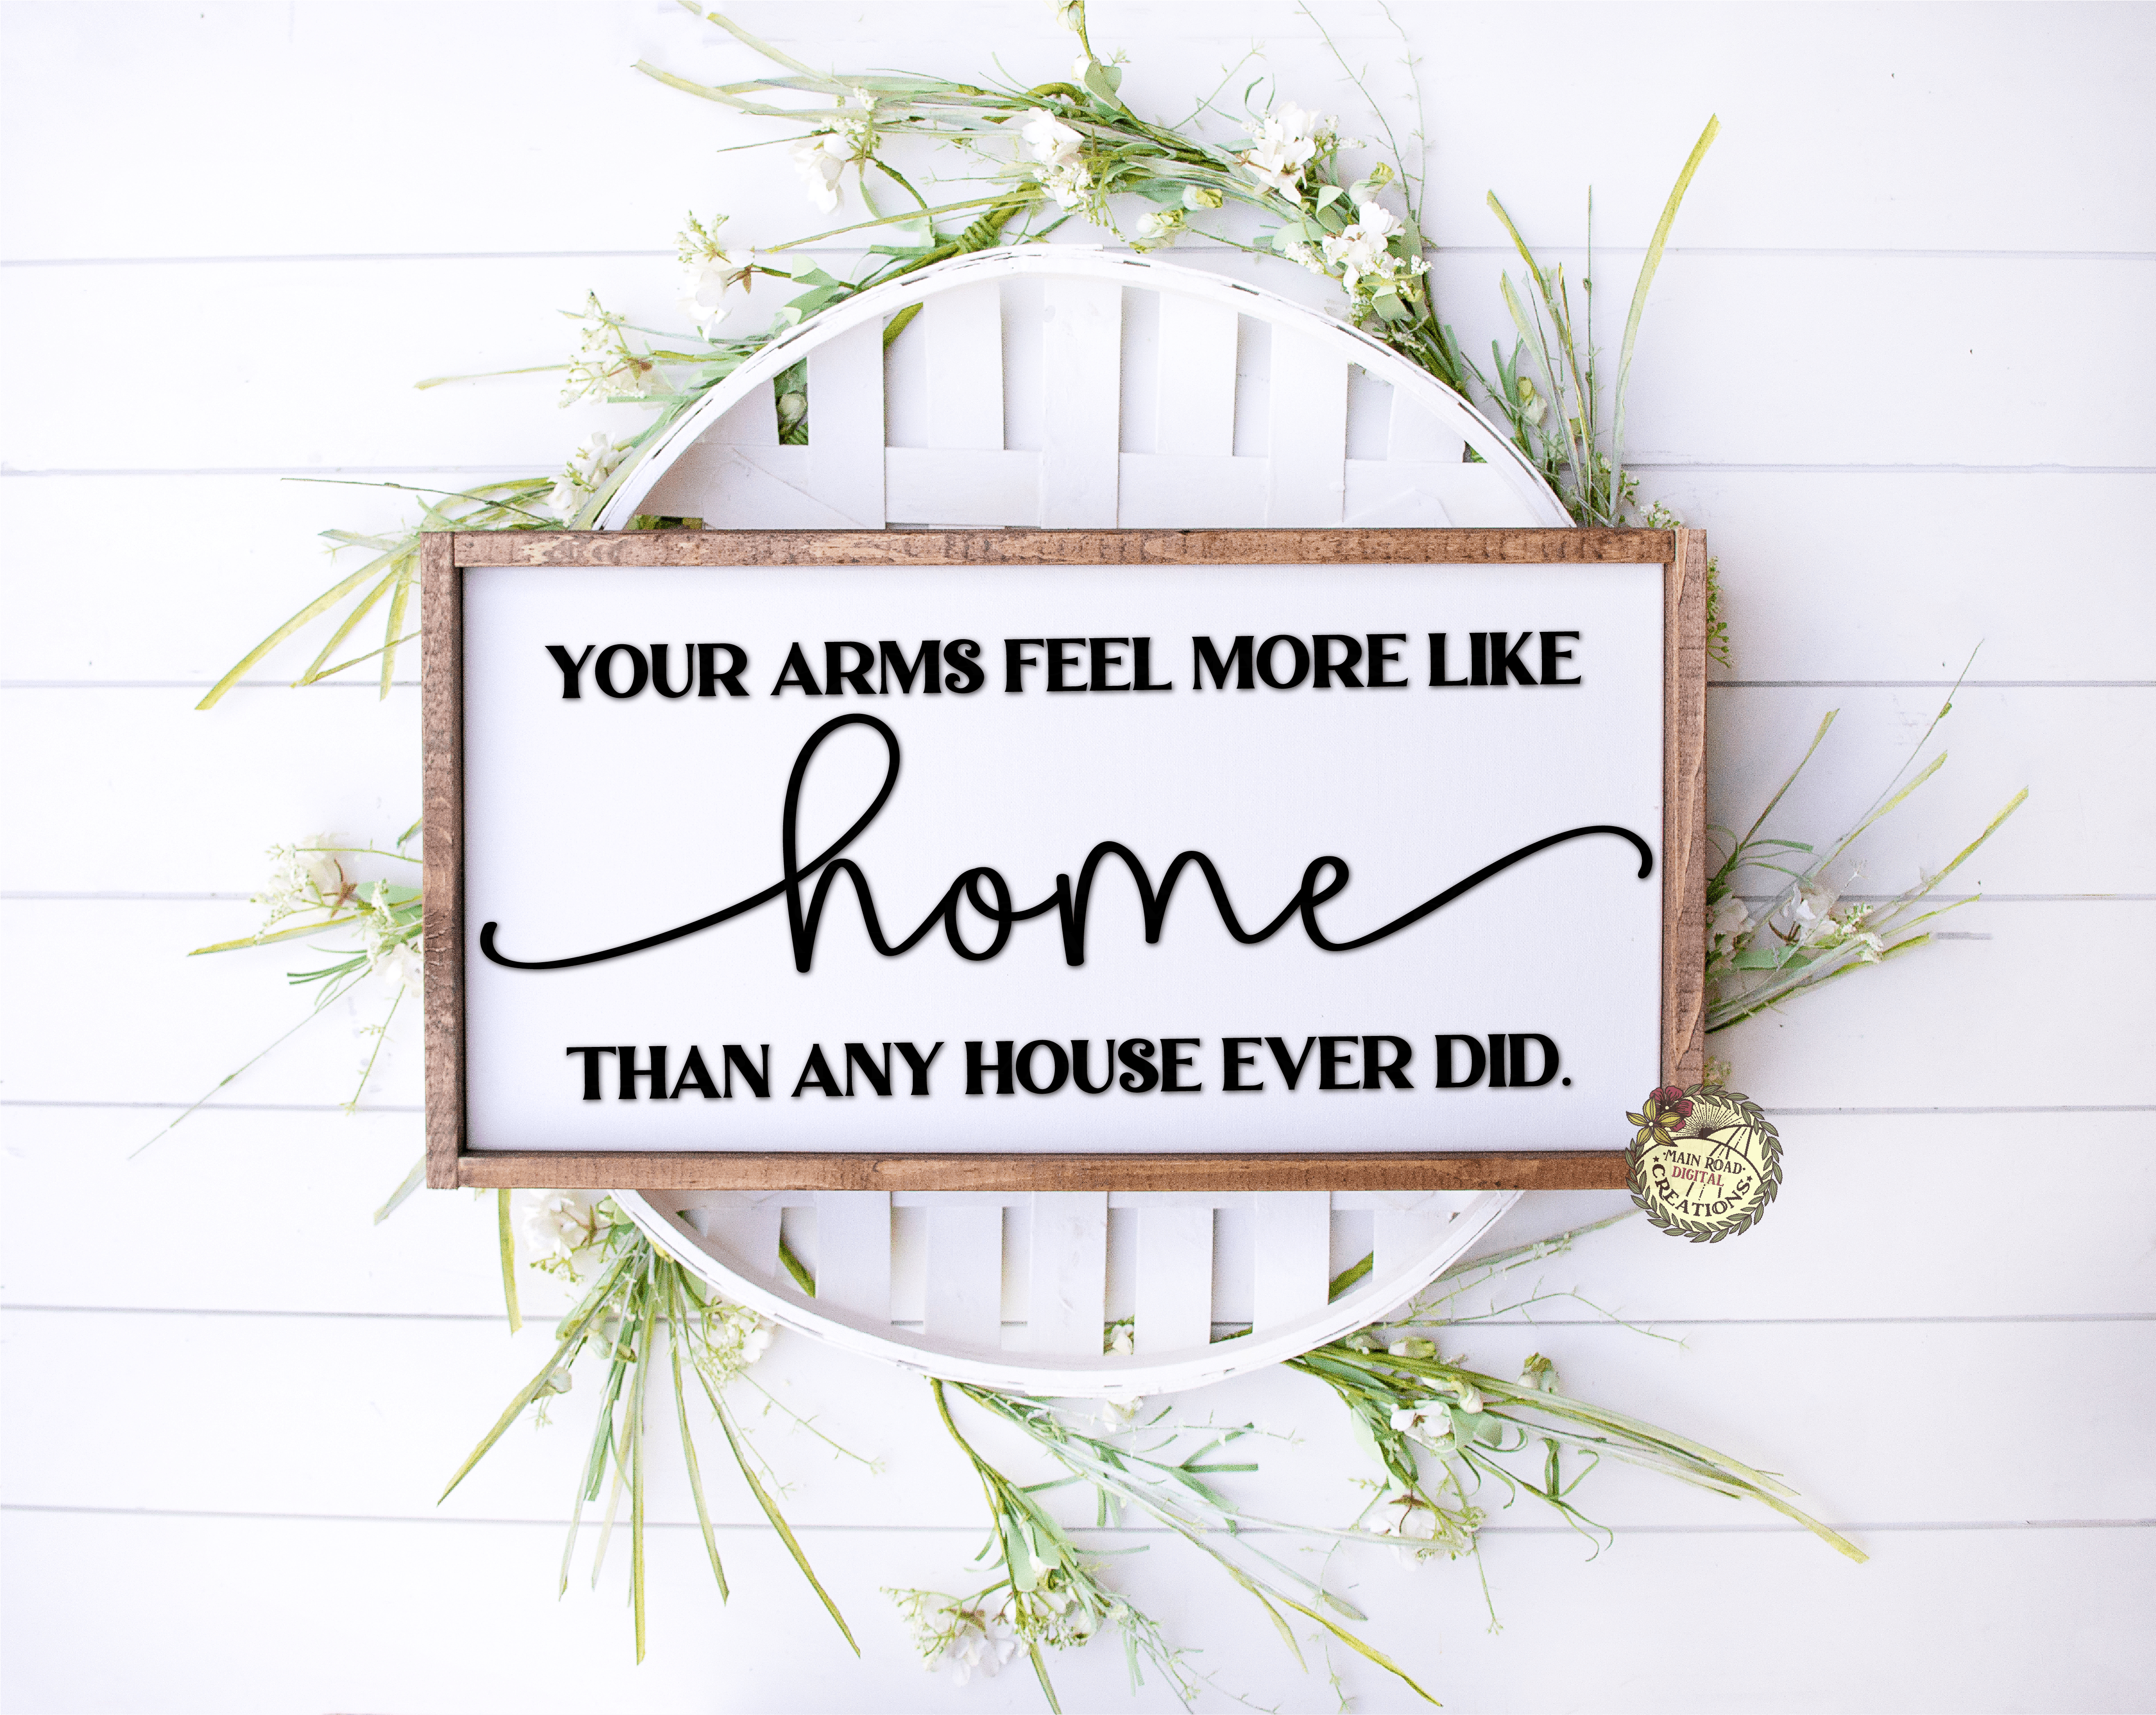 FREE FARMHOUSE STYLE SVG SIGN